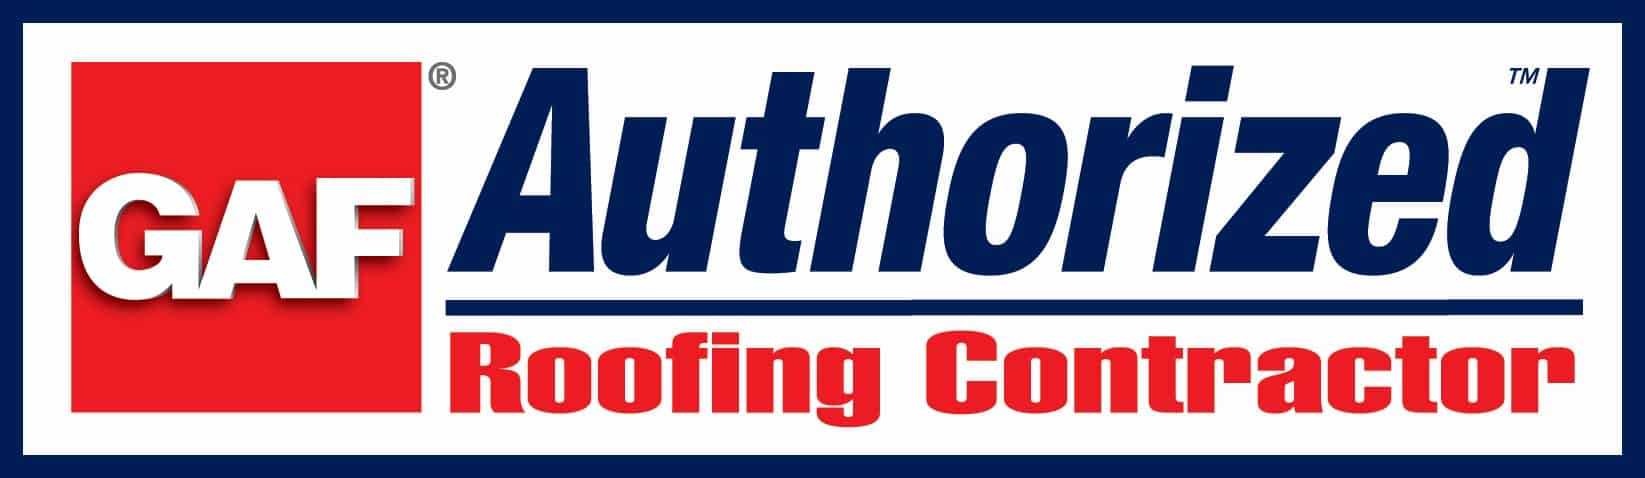 Comfort Roofing Contractor-ARP Roofing & Remodeling 7